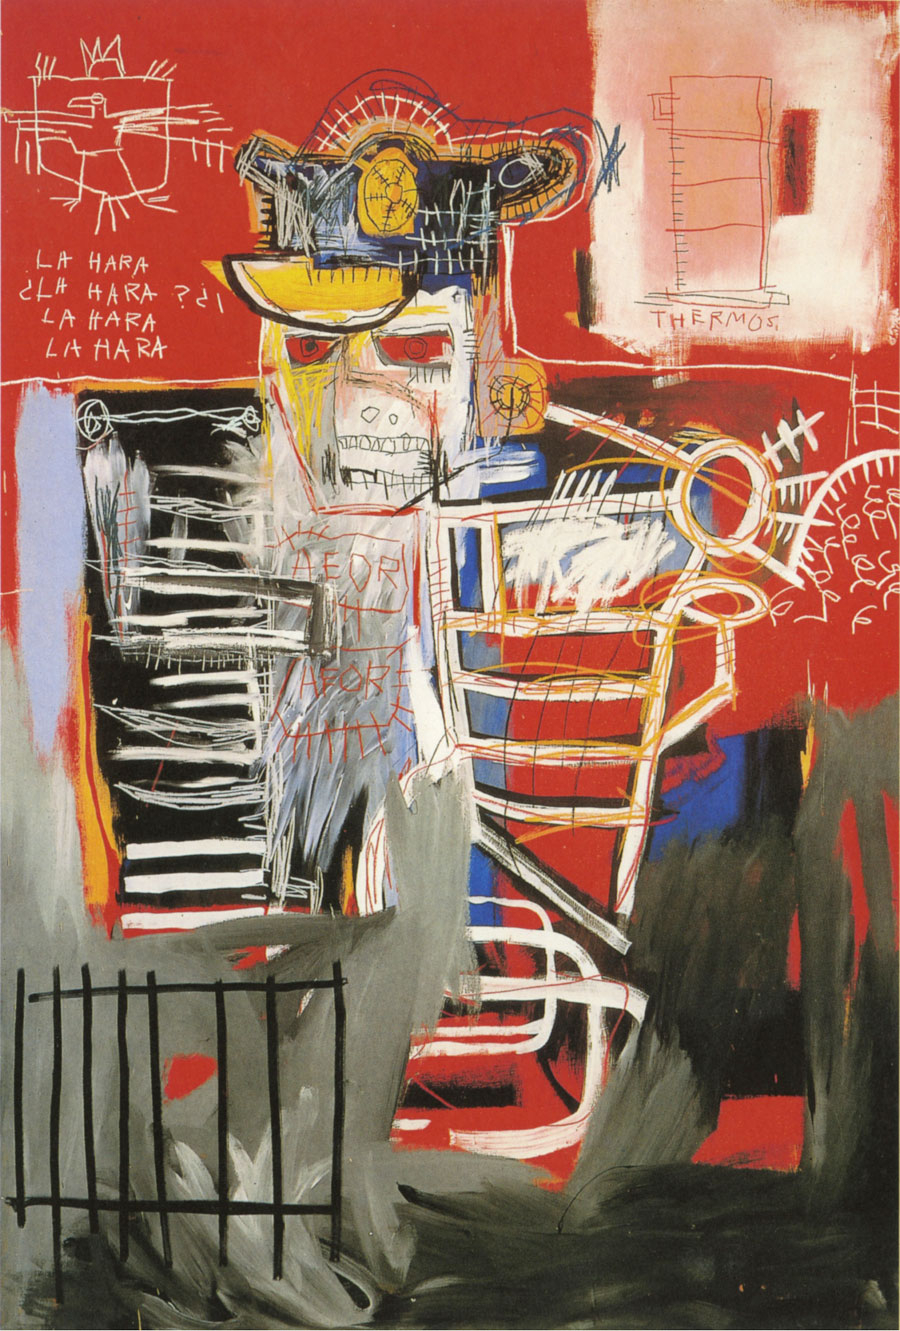 Eternal art star Jean-Michel Basquiat is alive and well at the current Gagosian exhibit in Chelsea. Over 50 canvases depict his relentless energy, explosive content, and socio-cultural dialogues. A must see for anyone period, his work still speaks volumes in today's age.